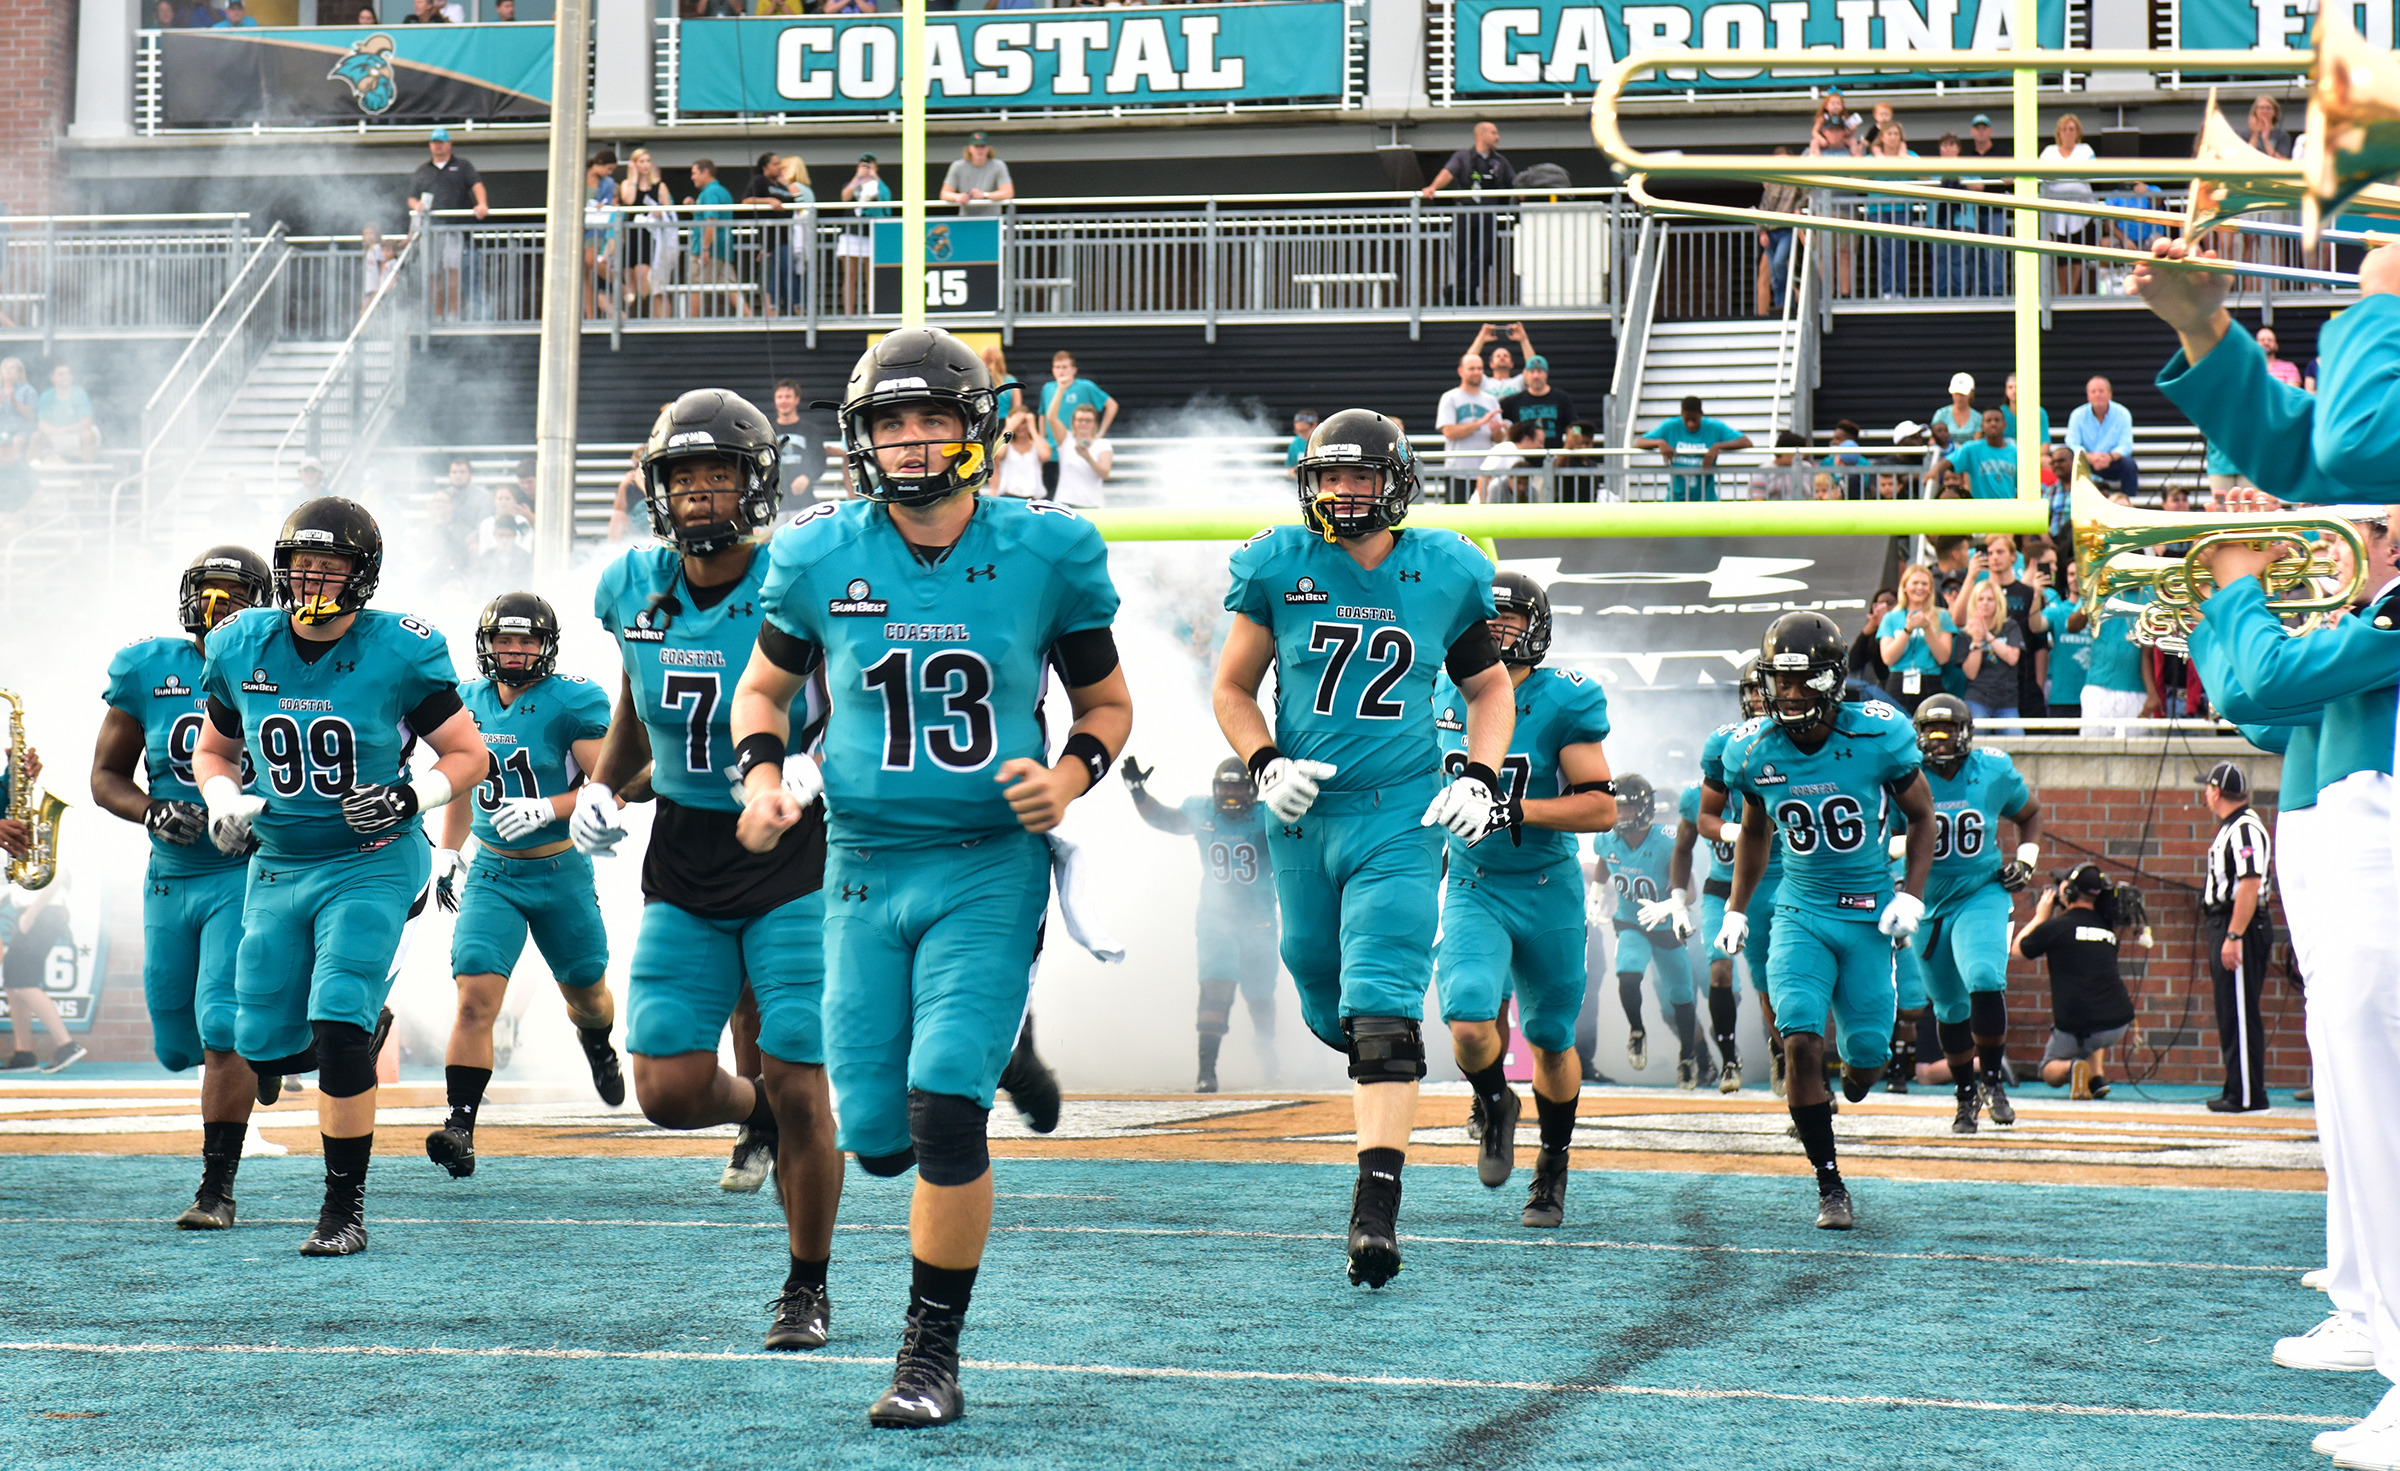 Coastal Carolina Troy Football Kickoff Set For 4 30 Nov 11 Coastal Carolina University Athletics